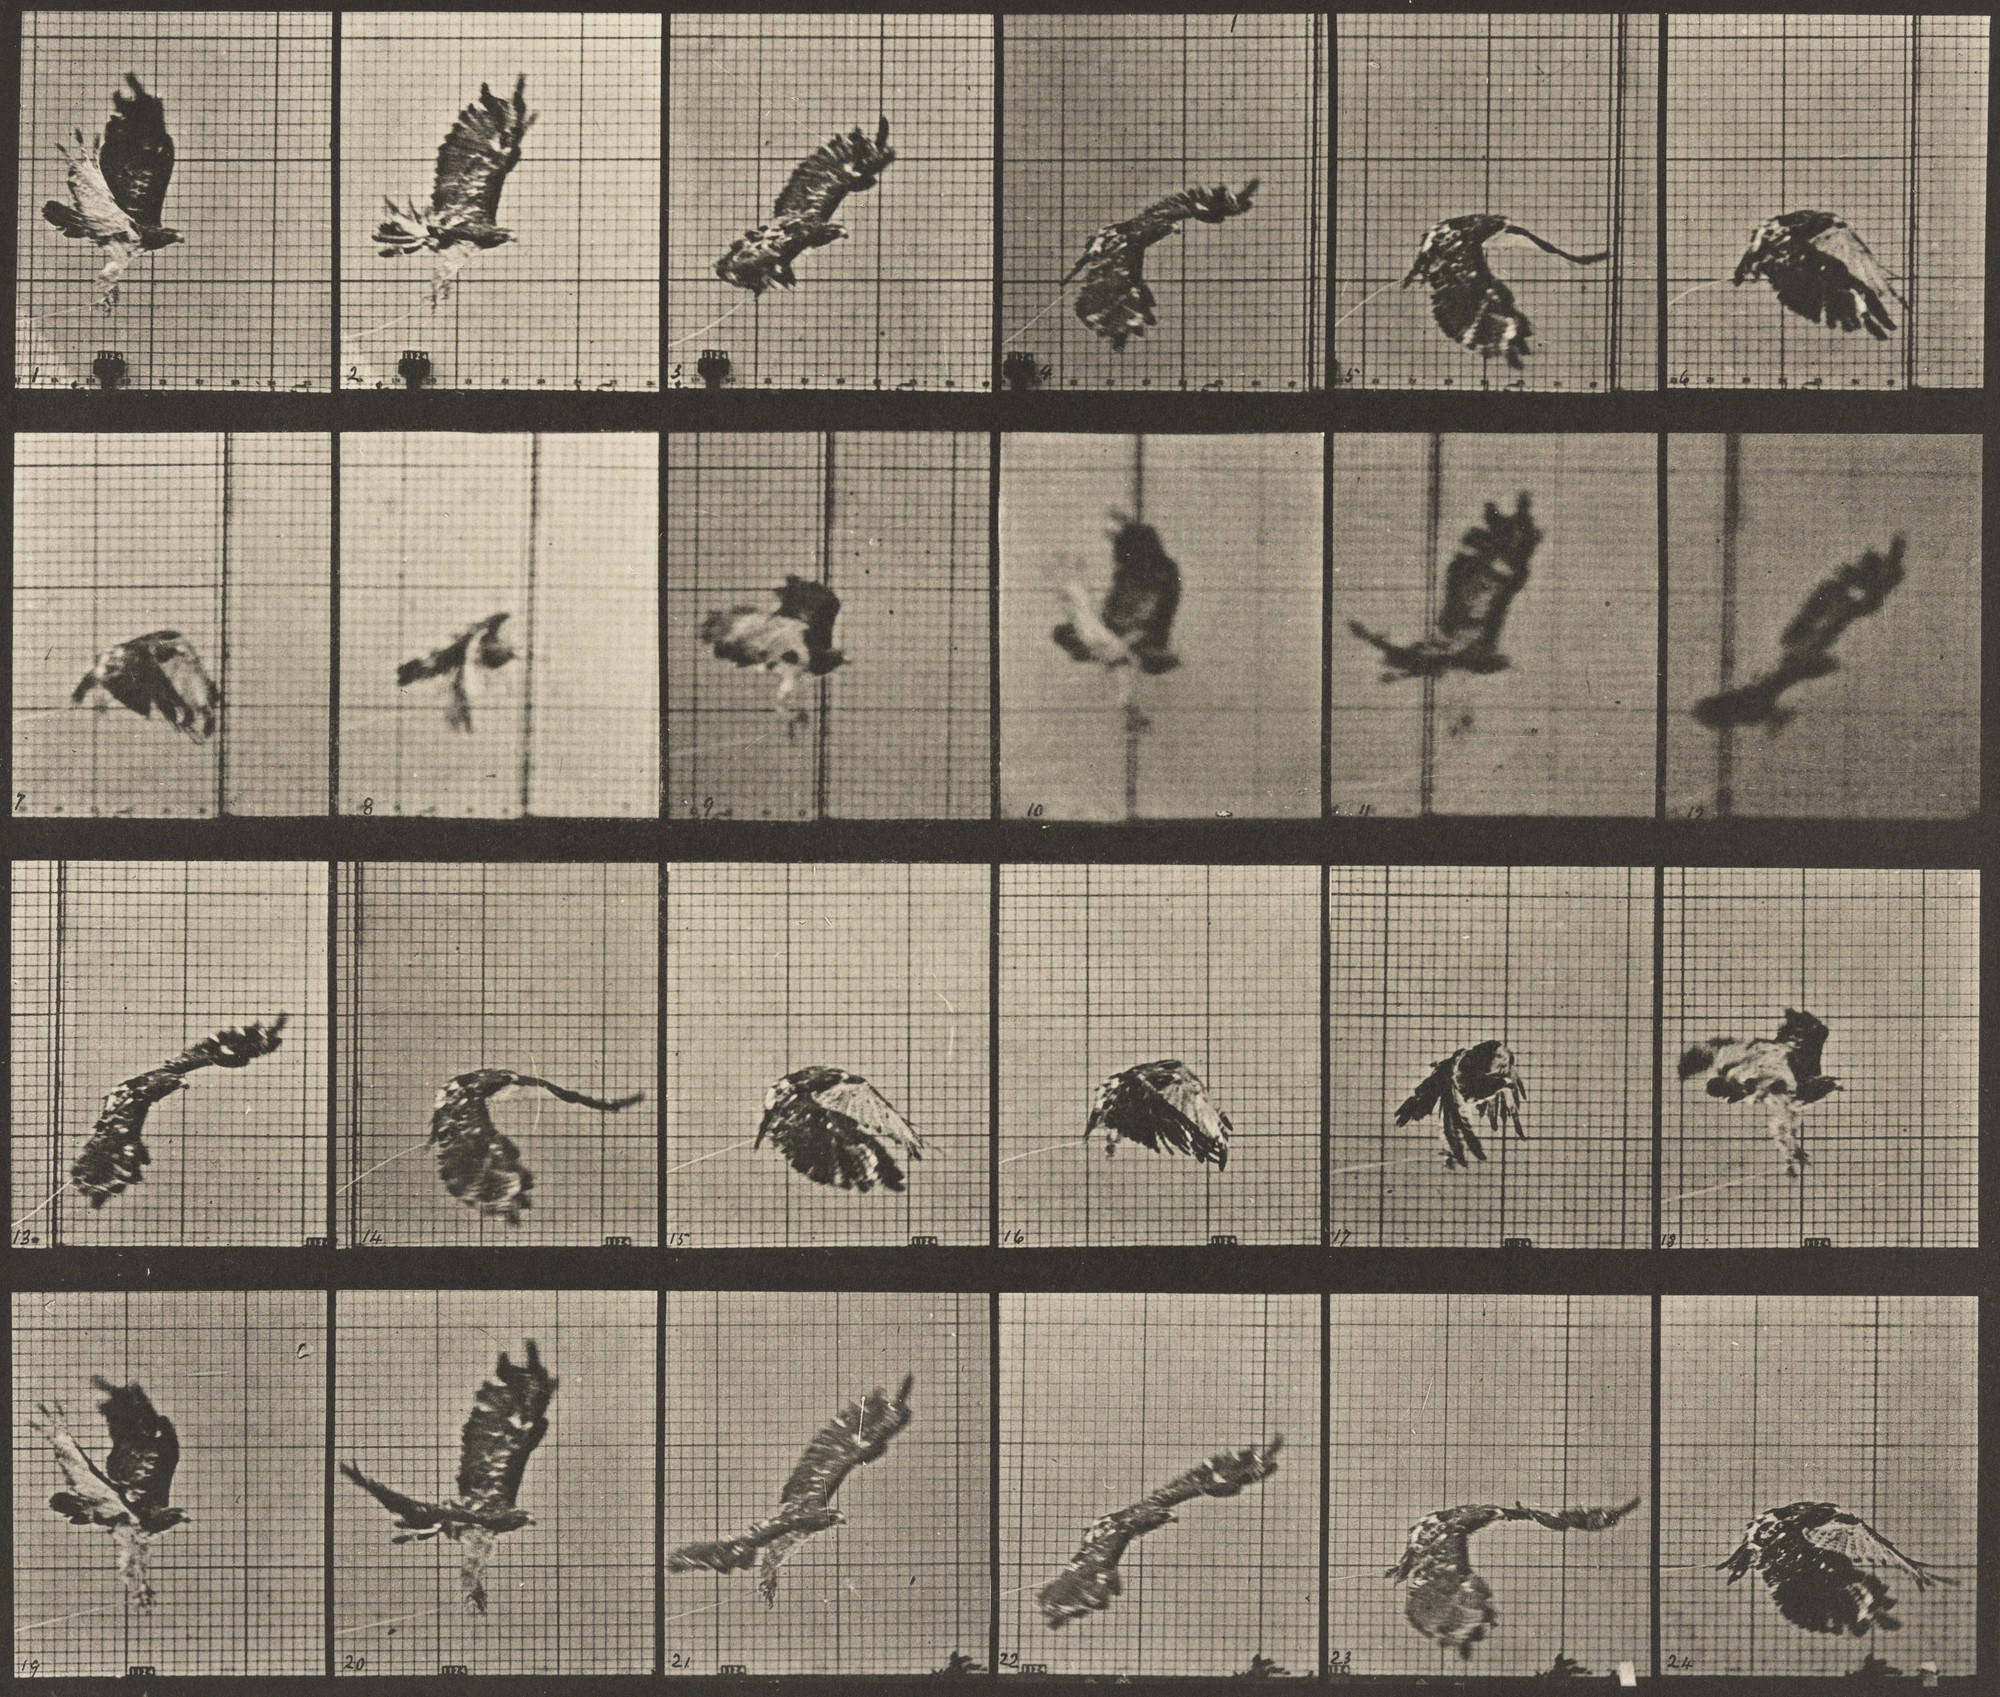 Eadweard J. Muybridge. Red-Tailed Hawk Flying: Plate 763 from Animal Locomotion. 1884-86